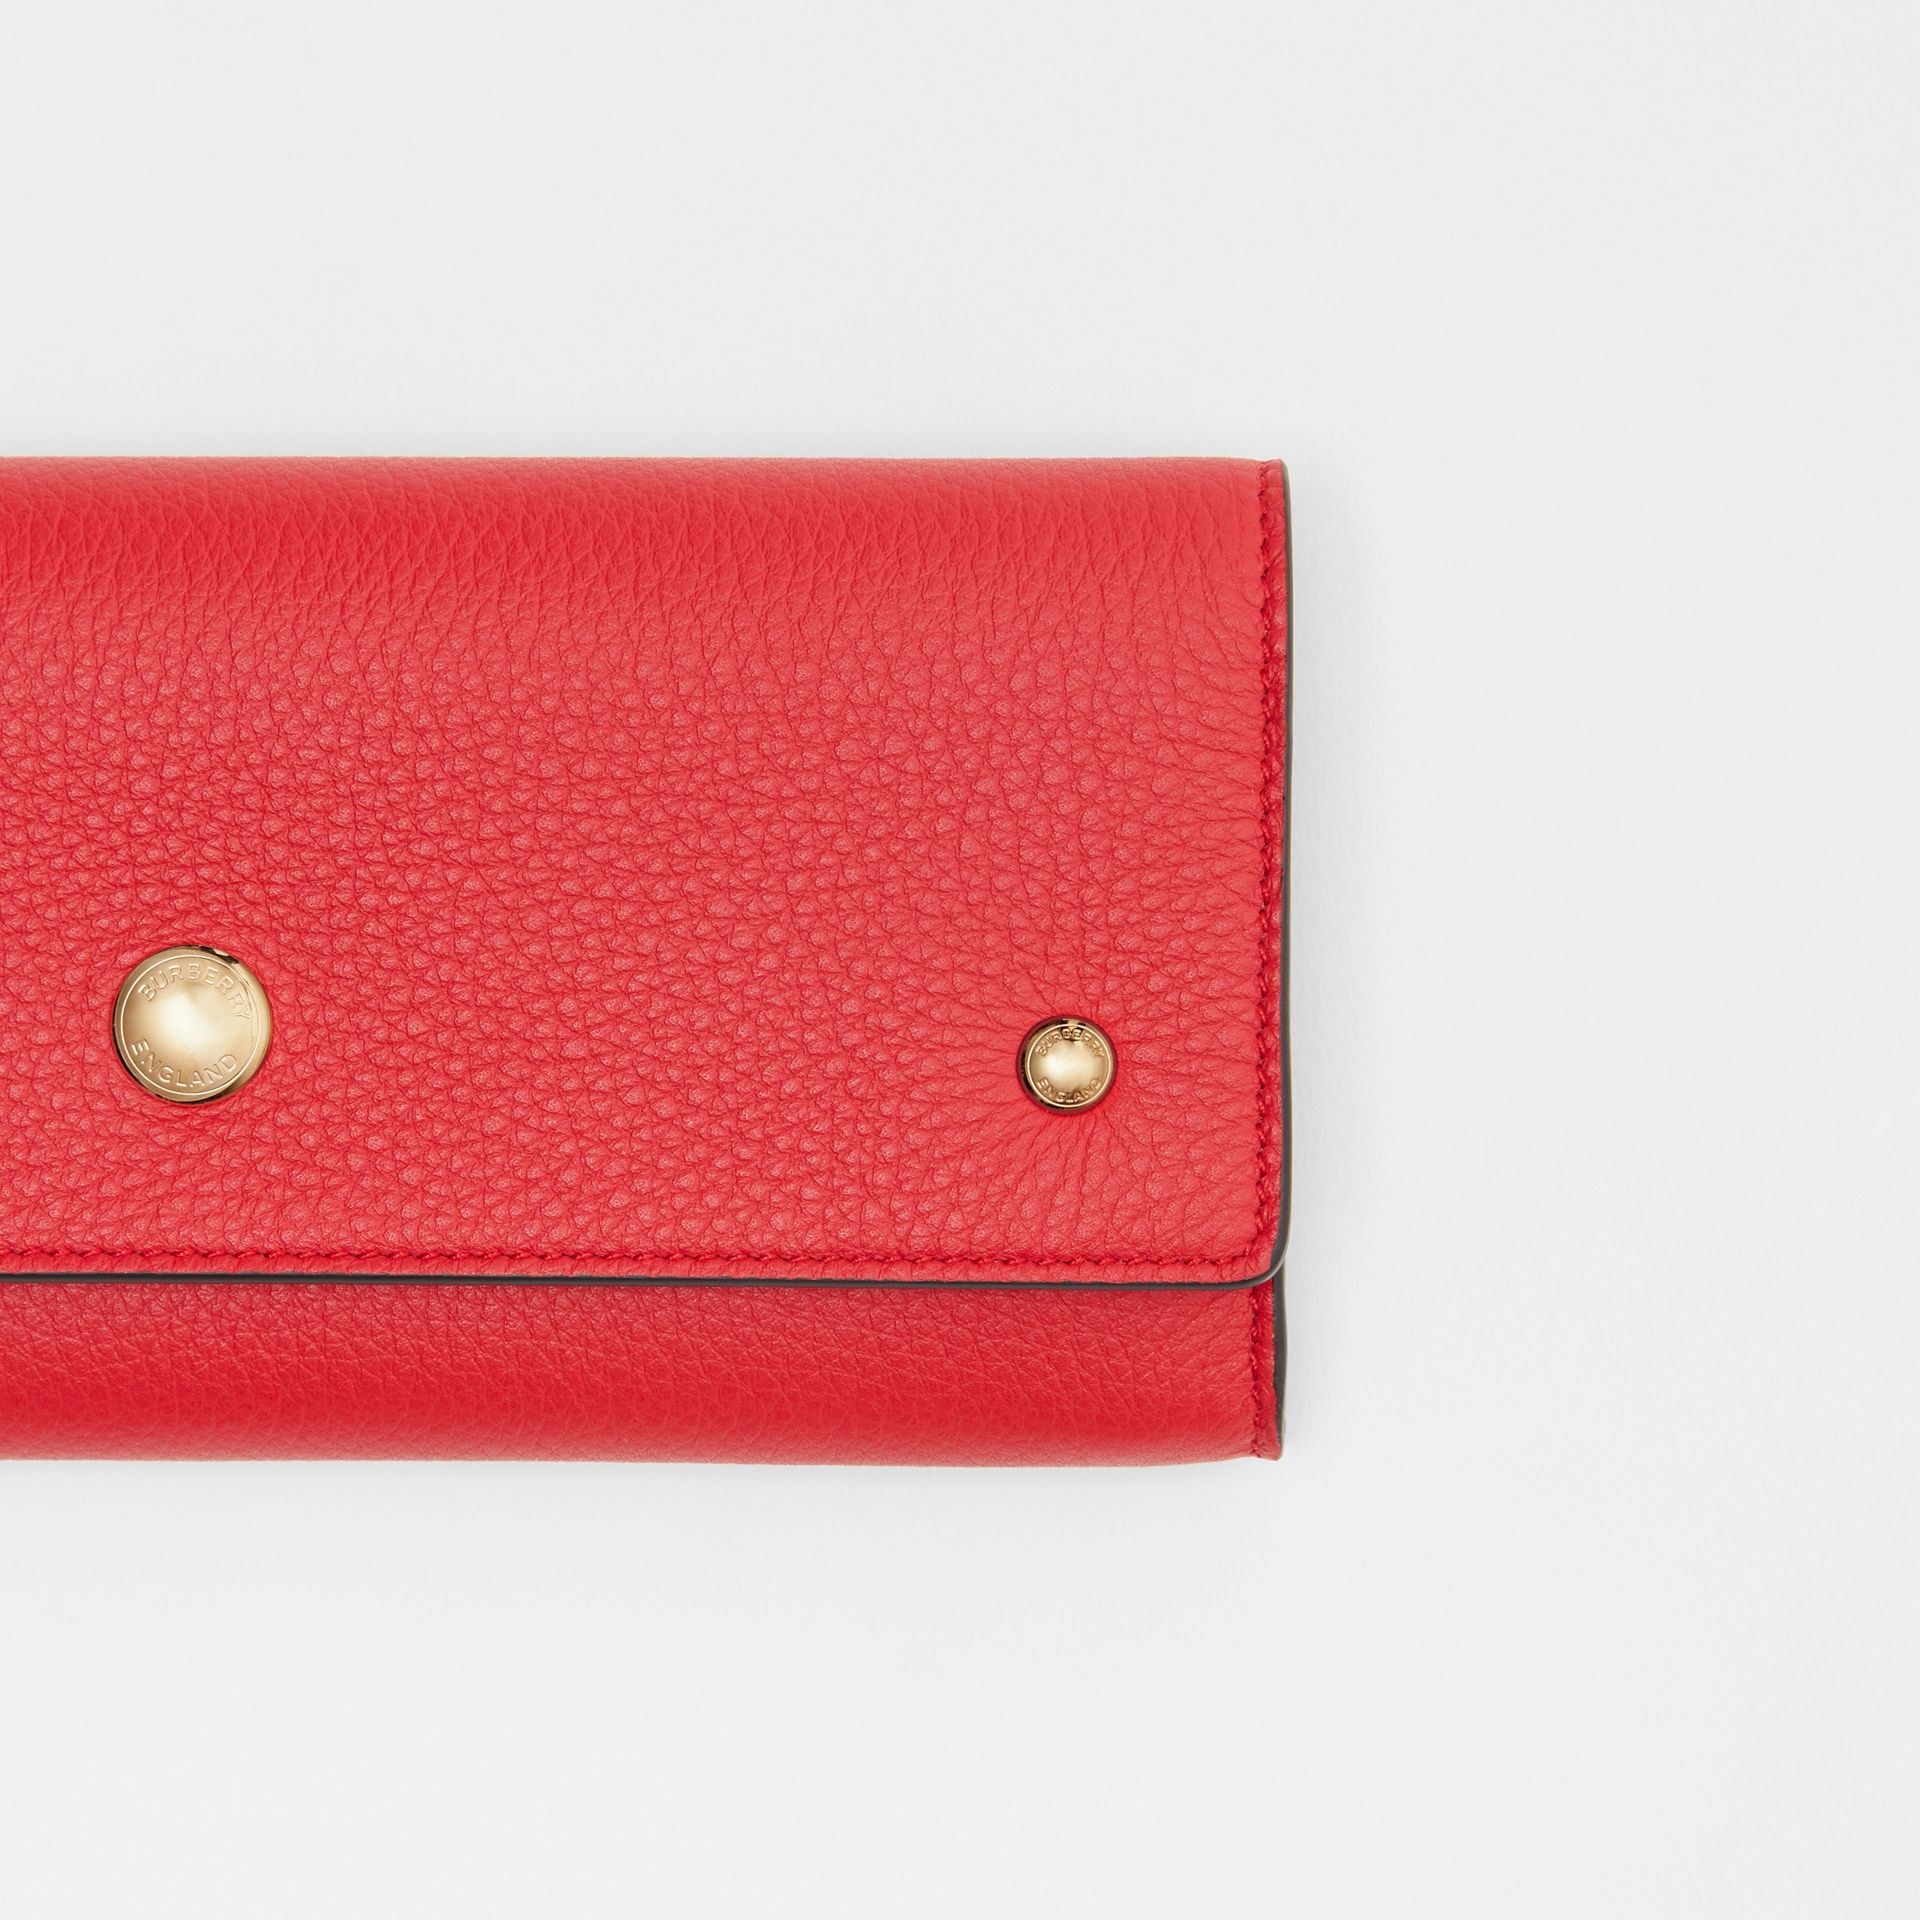 Grainy Leather Continental Wallet in Bright Military Red - Women | Burberry Singapore - gallery image 1